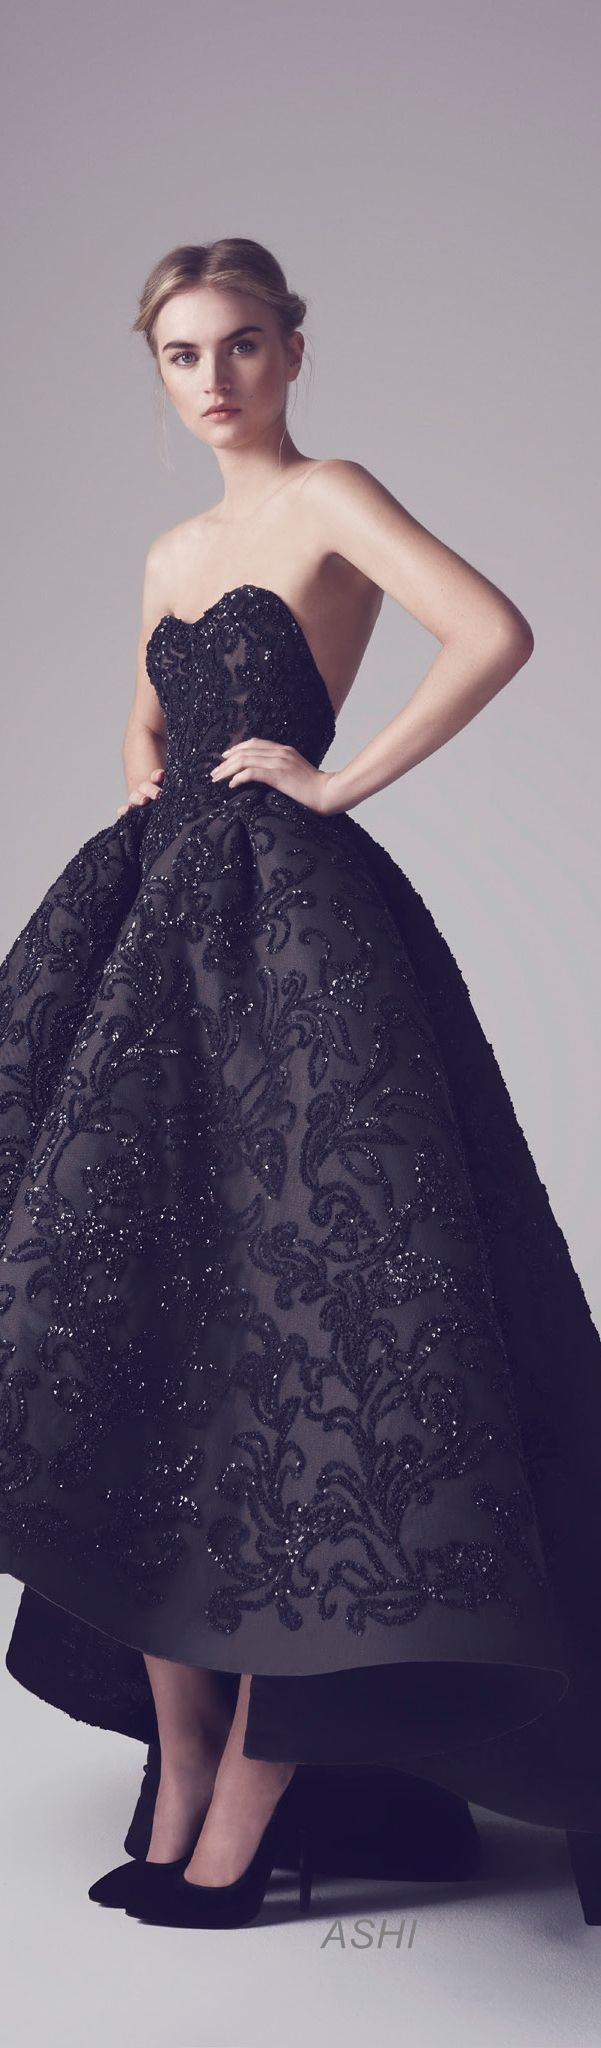 98 best Dresses images on Pinterest | Evening gowns, Party wear ...